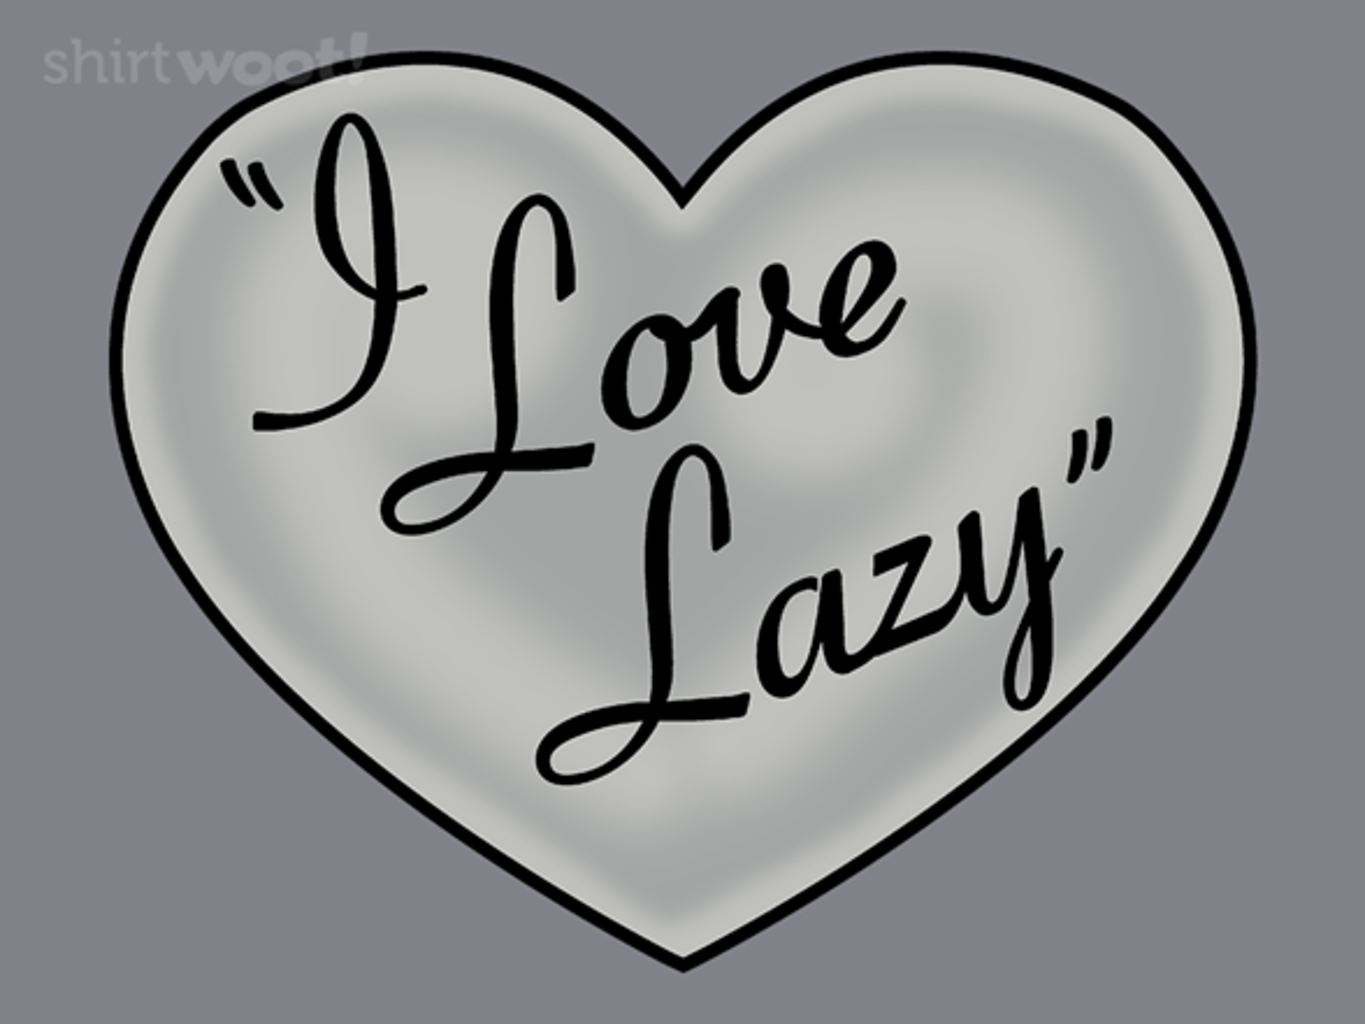 Woot!: I Love Lazy